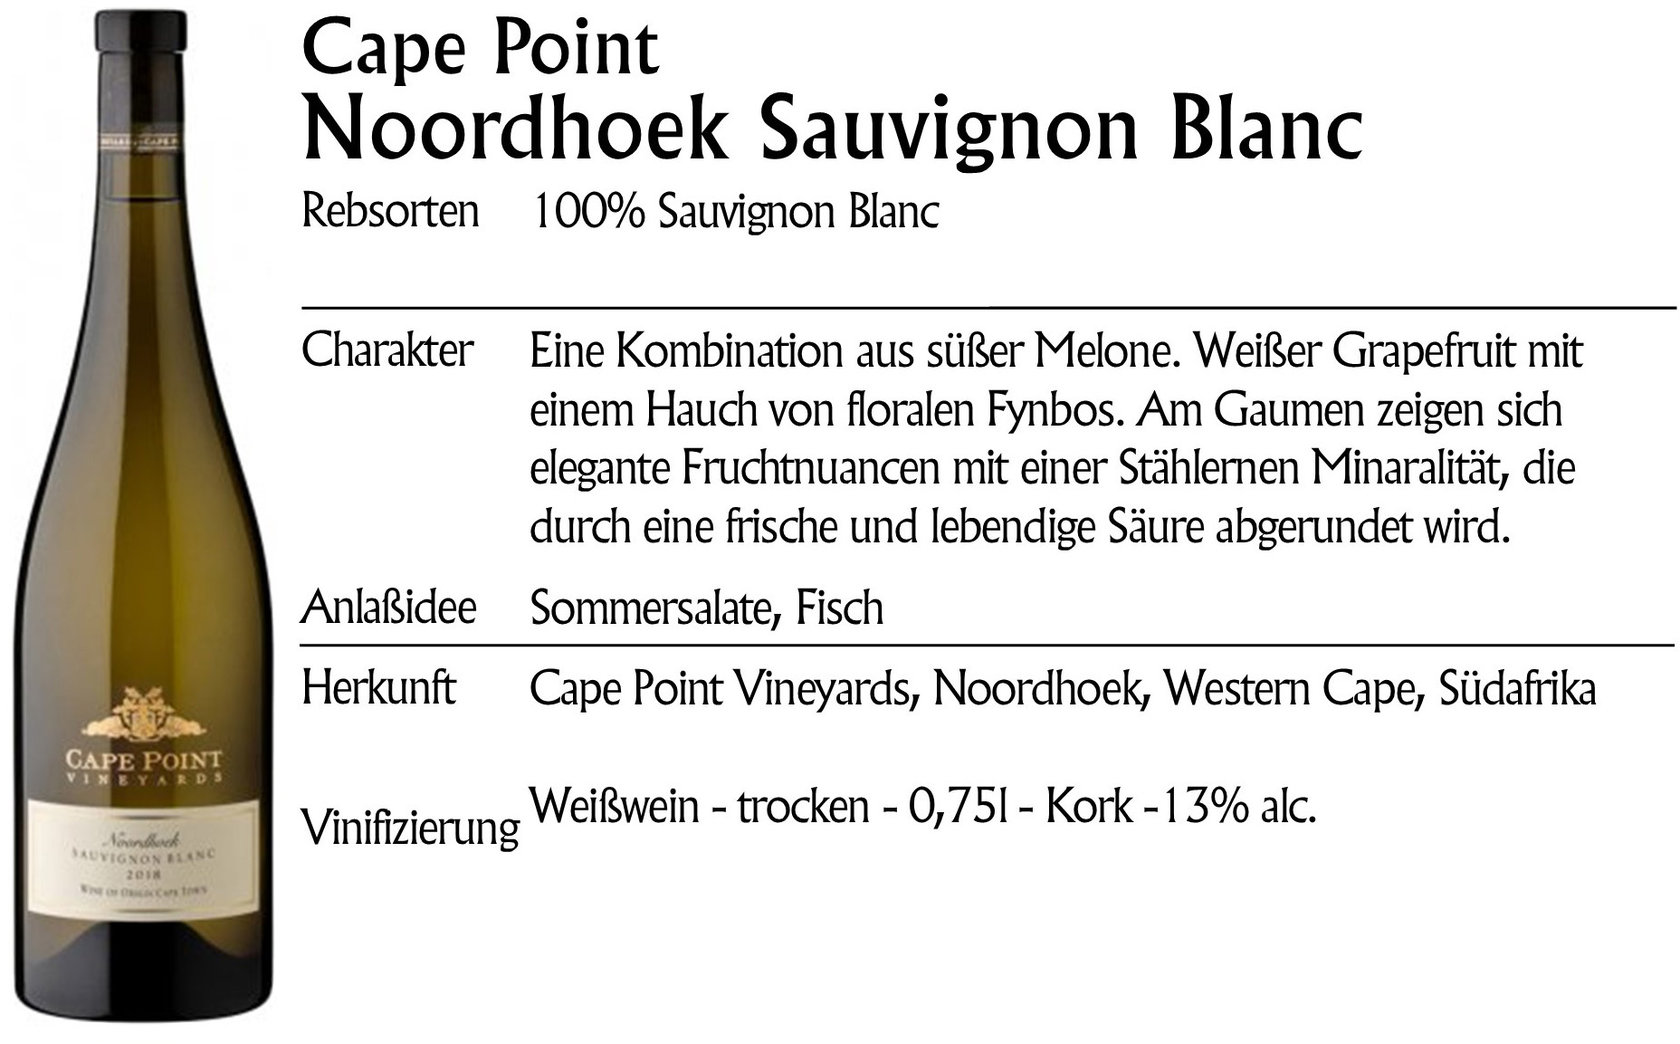 Cape Point Noordhoek Sauvignon Blanc 2018